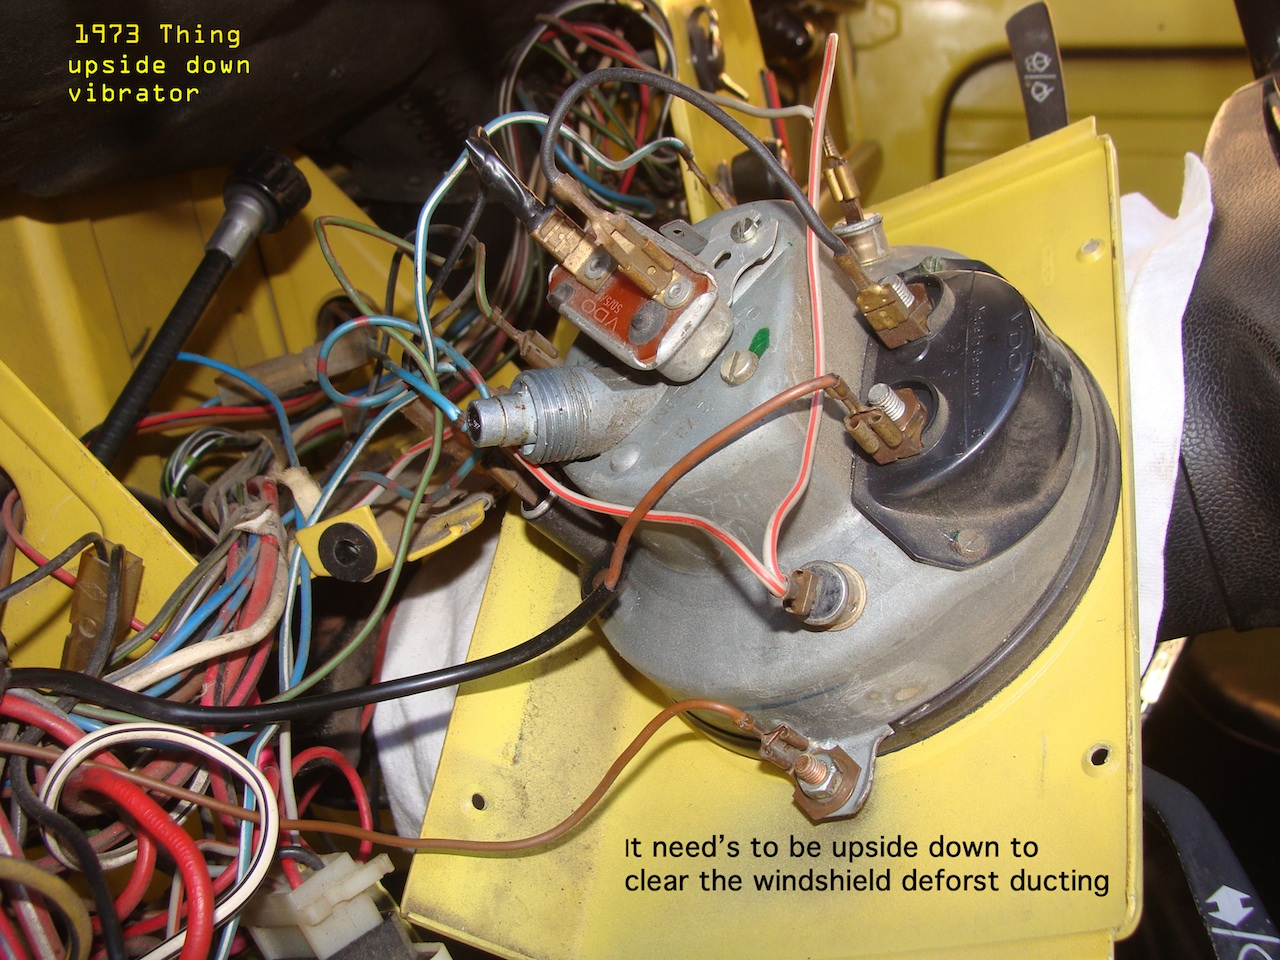 On A 12 Volt Gauge Wiring Diagram For Vw Library Honda Picture Image May Have Been Reduced In Size Click To View Fullscreen